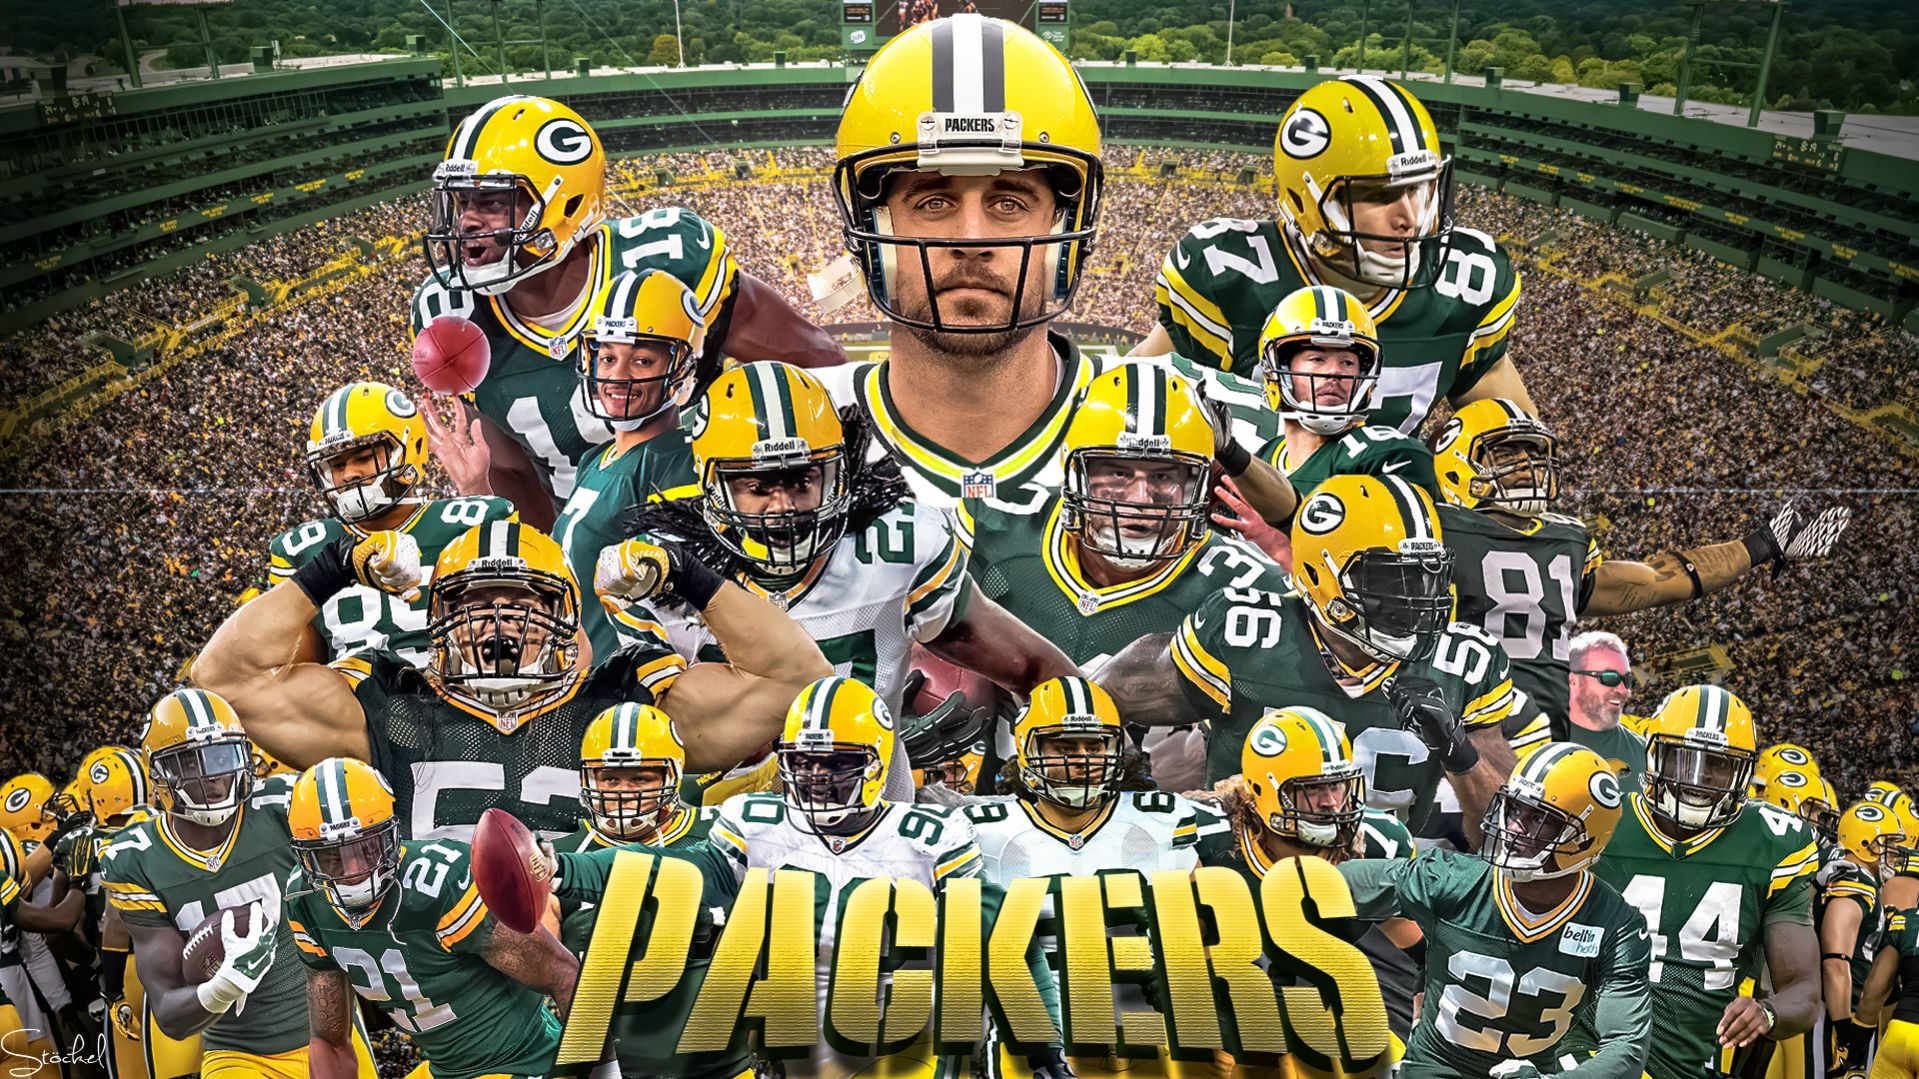 Wallpapers Green Bay Packers 41 Wallpapers Adorable 1919x1079